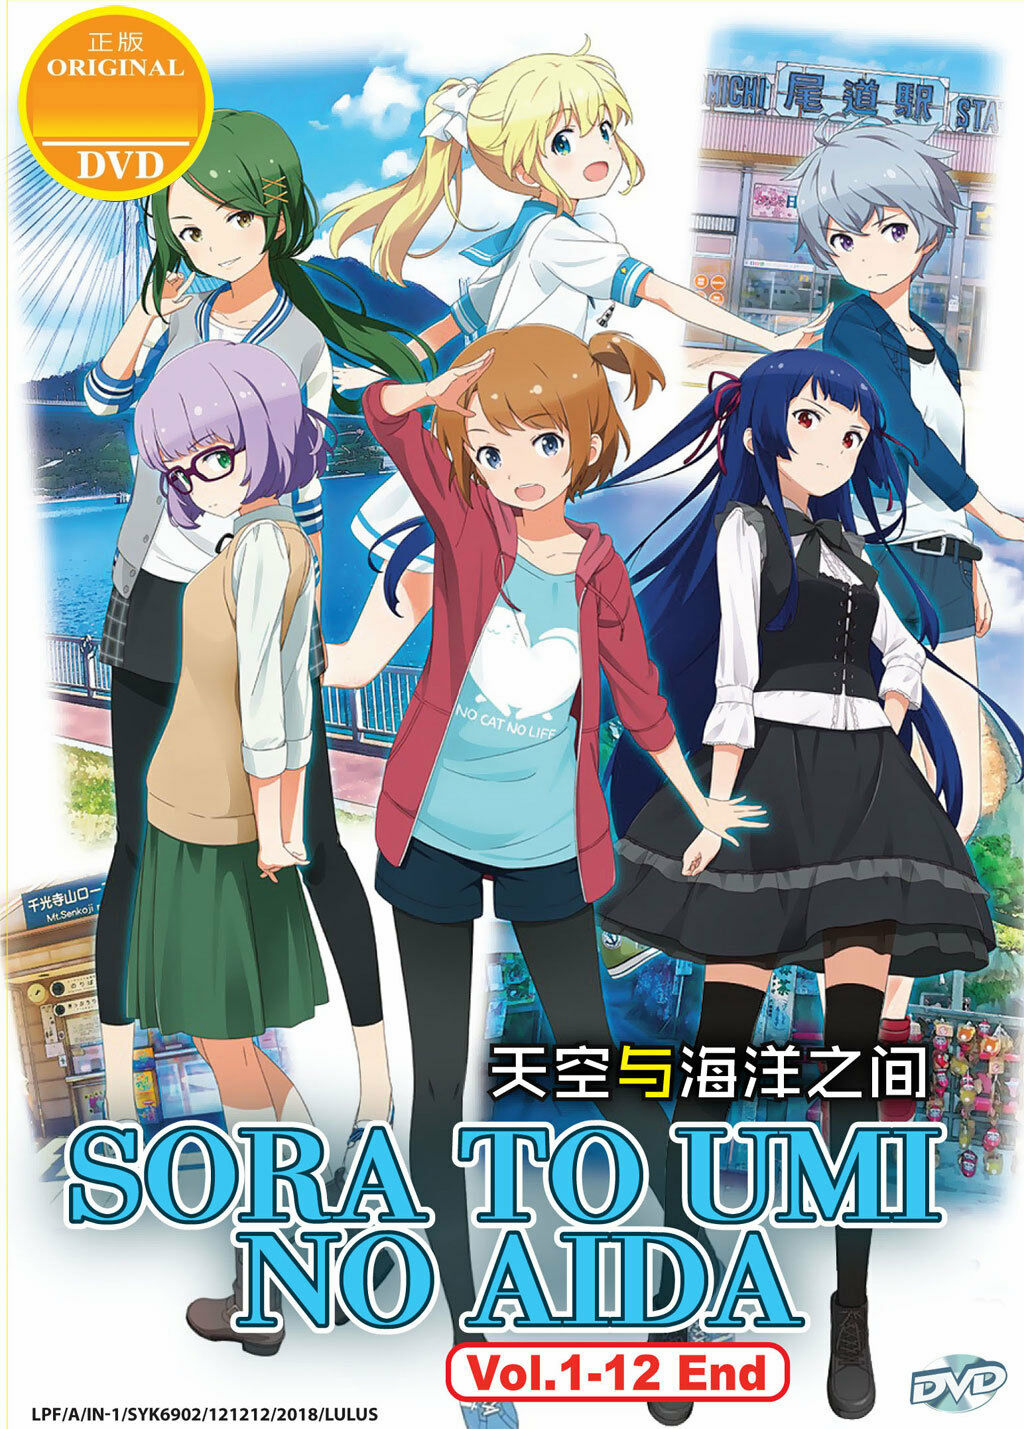 Sora To Umi No Aida (Between the Sky and Sea) DVD 1-12 Anime US Seller